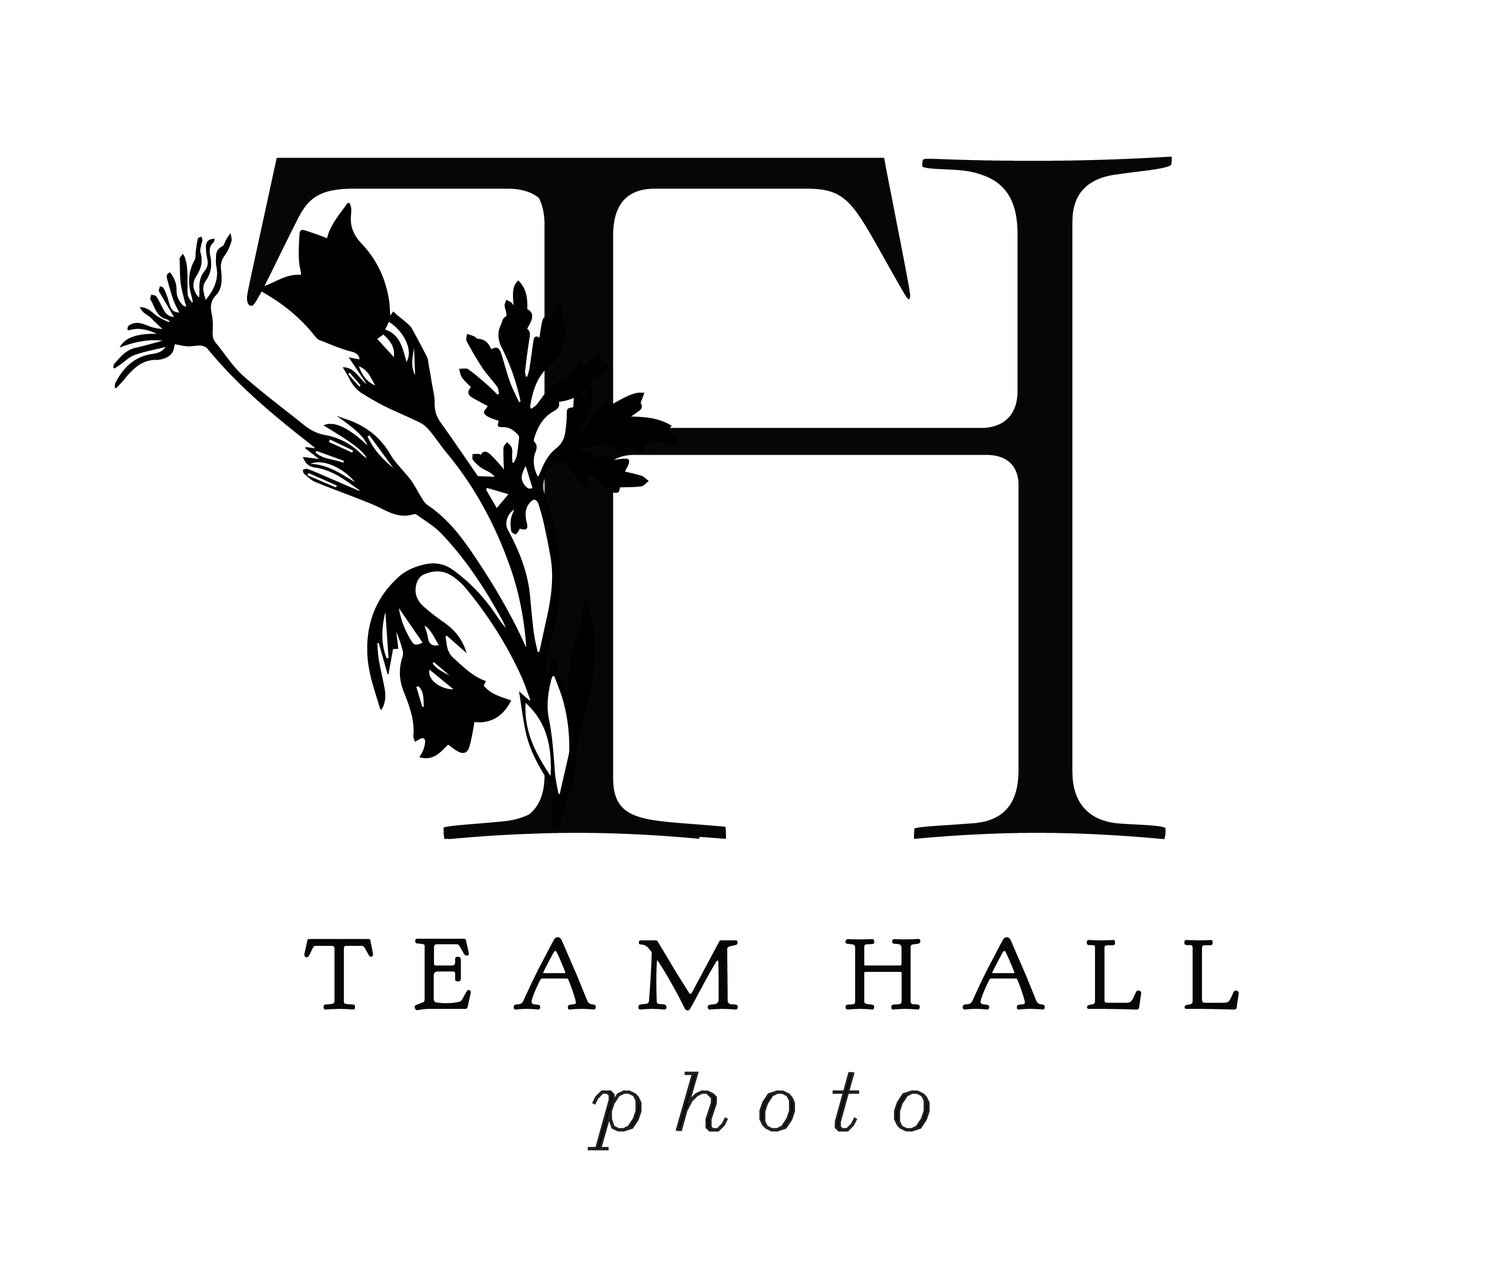 Team Hall Photo